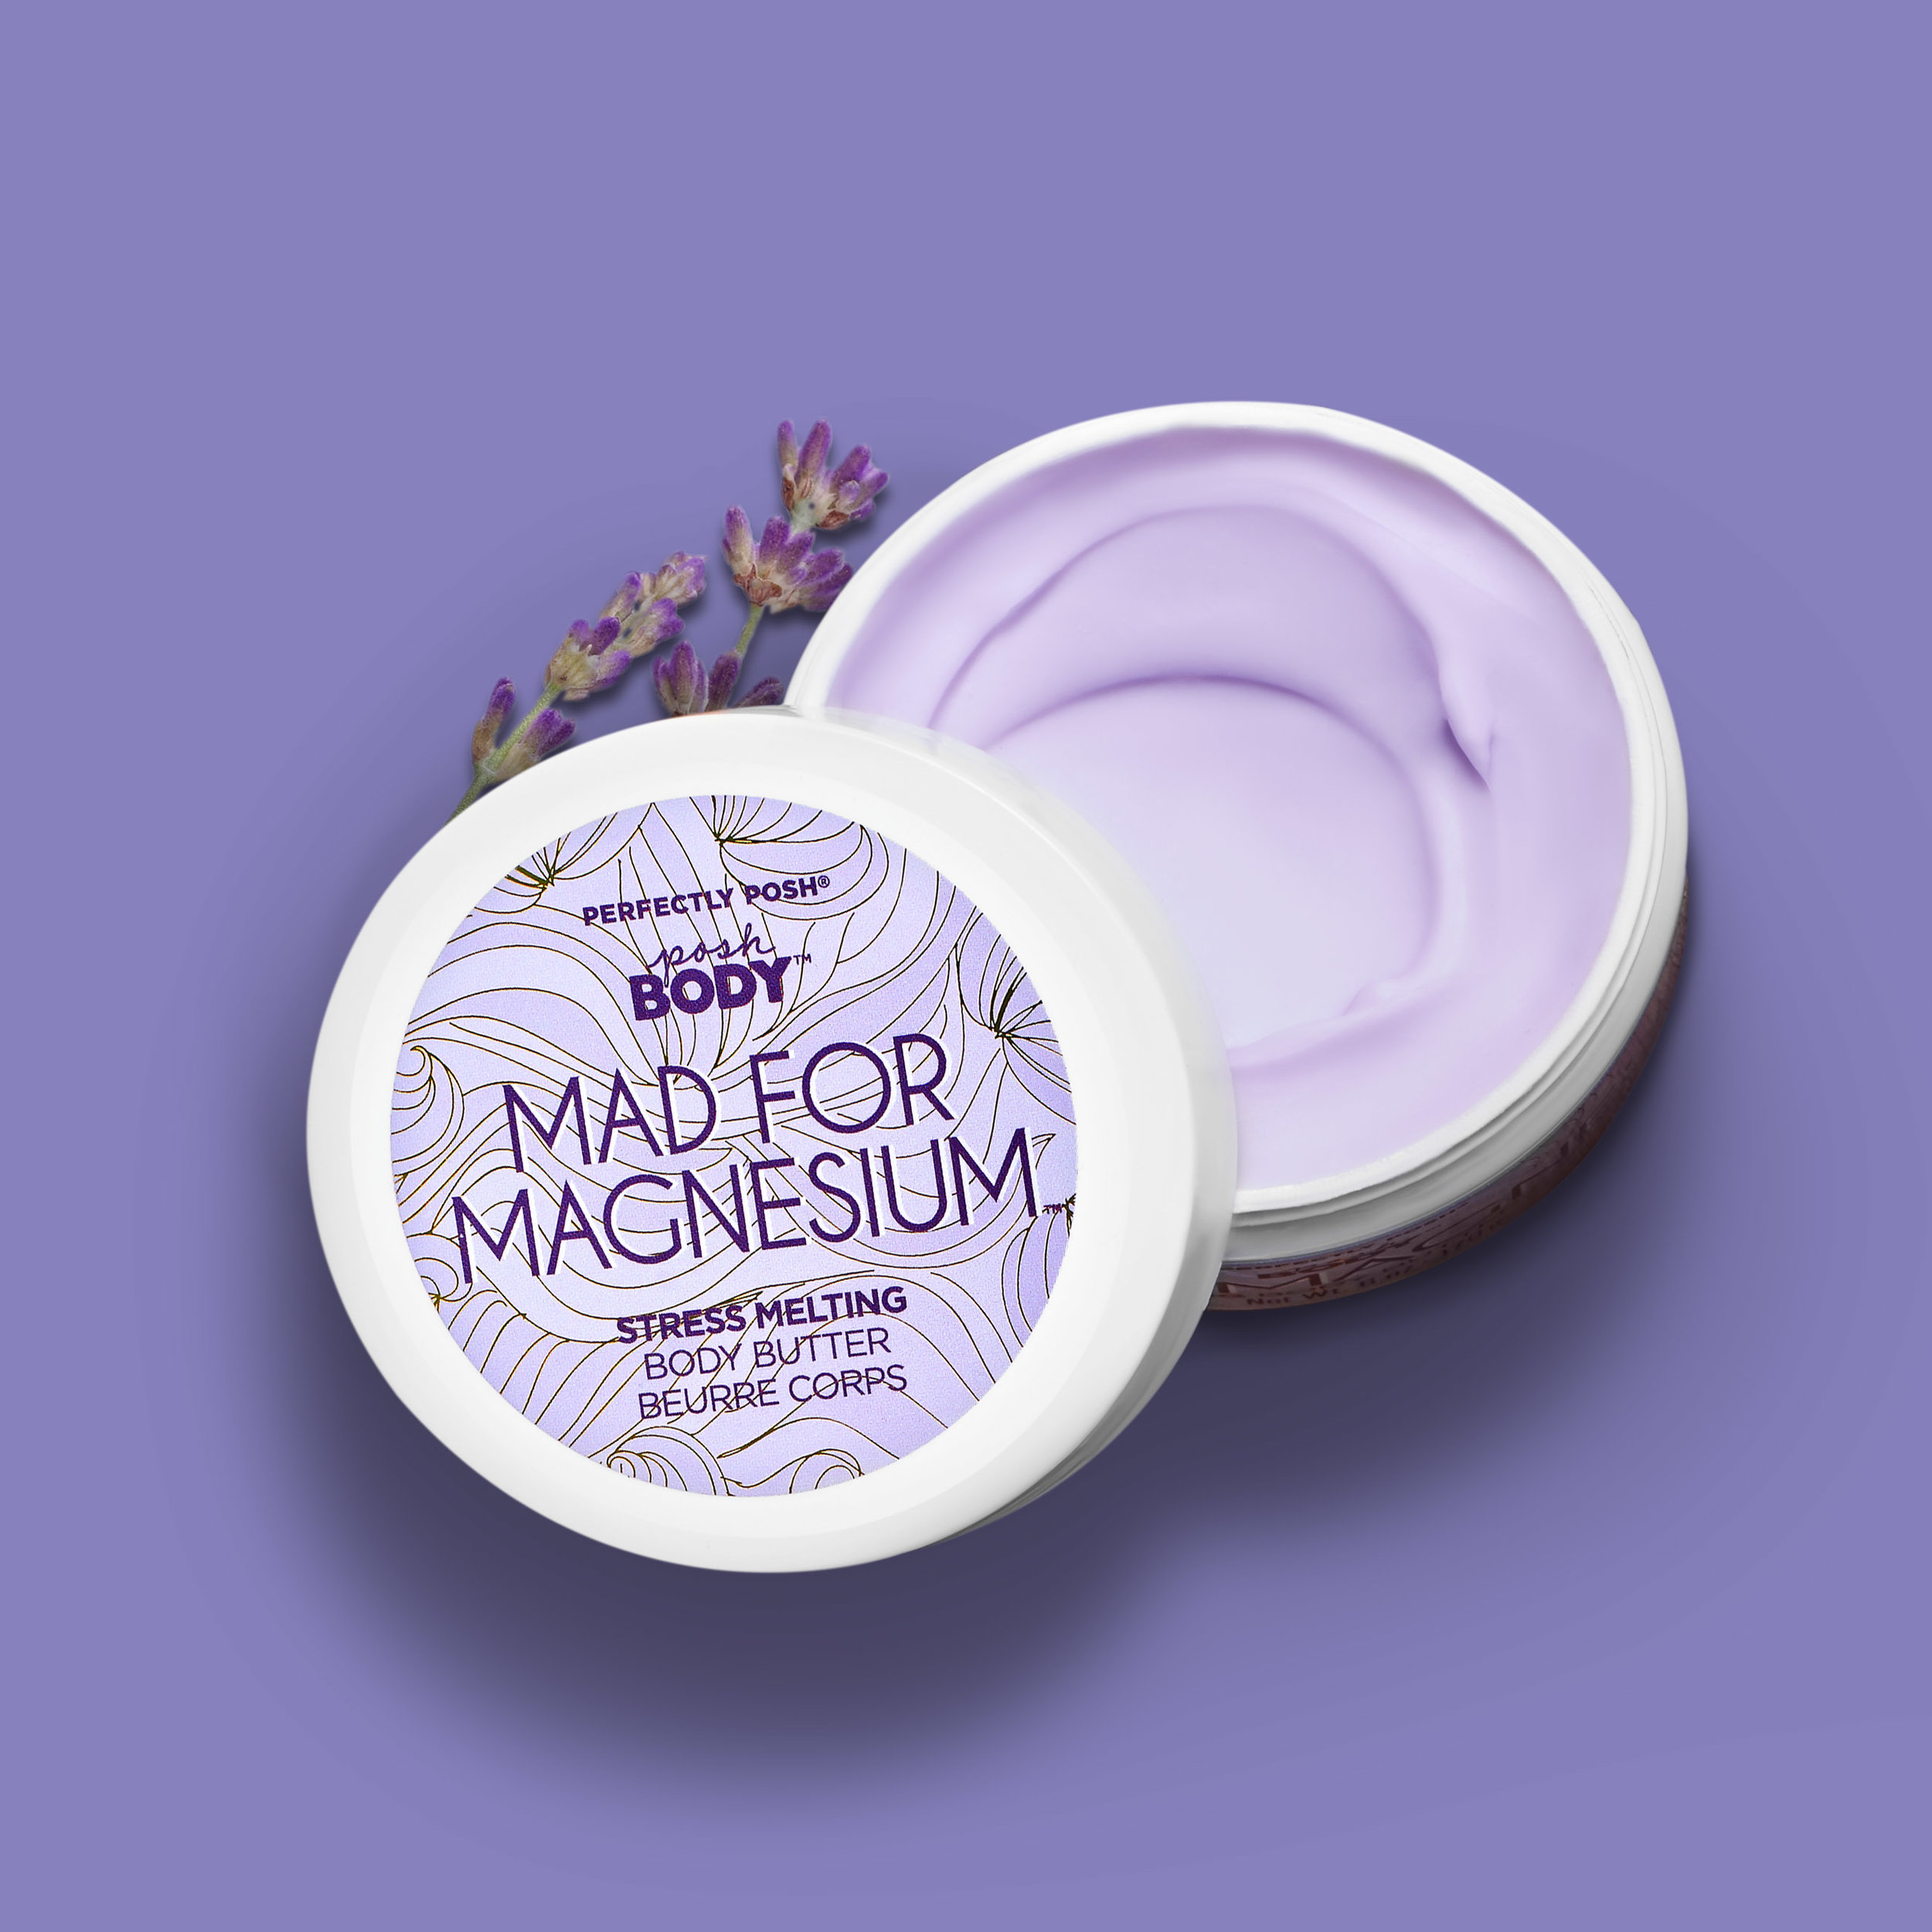 Perfectly Posh Mad for Magnesium Body Butter, magnesium skin care, magnesium chloride, soothing body butter, relaxing body butter, naturally based body butter, body butter for dry skin